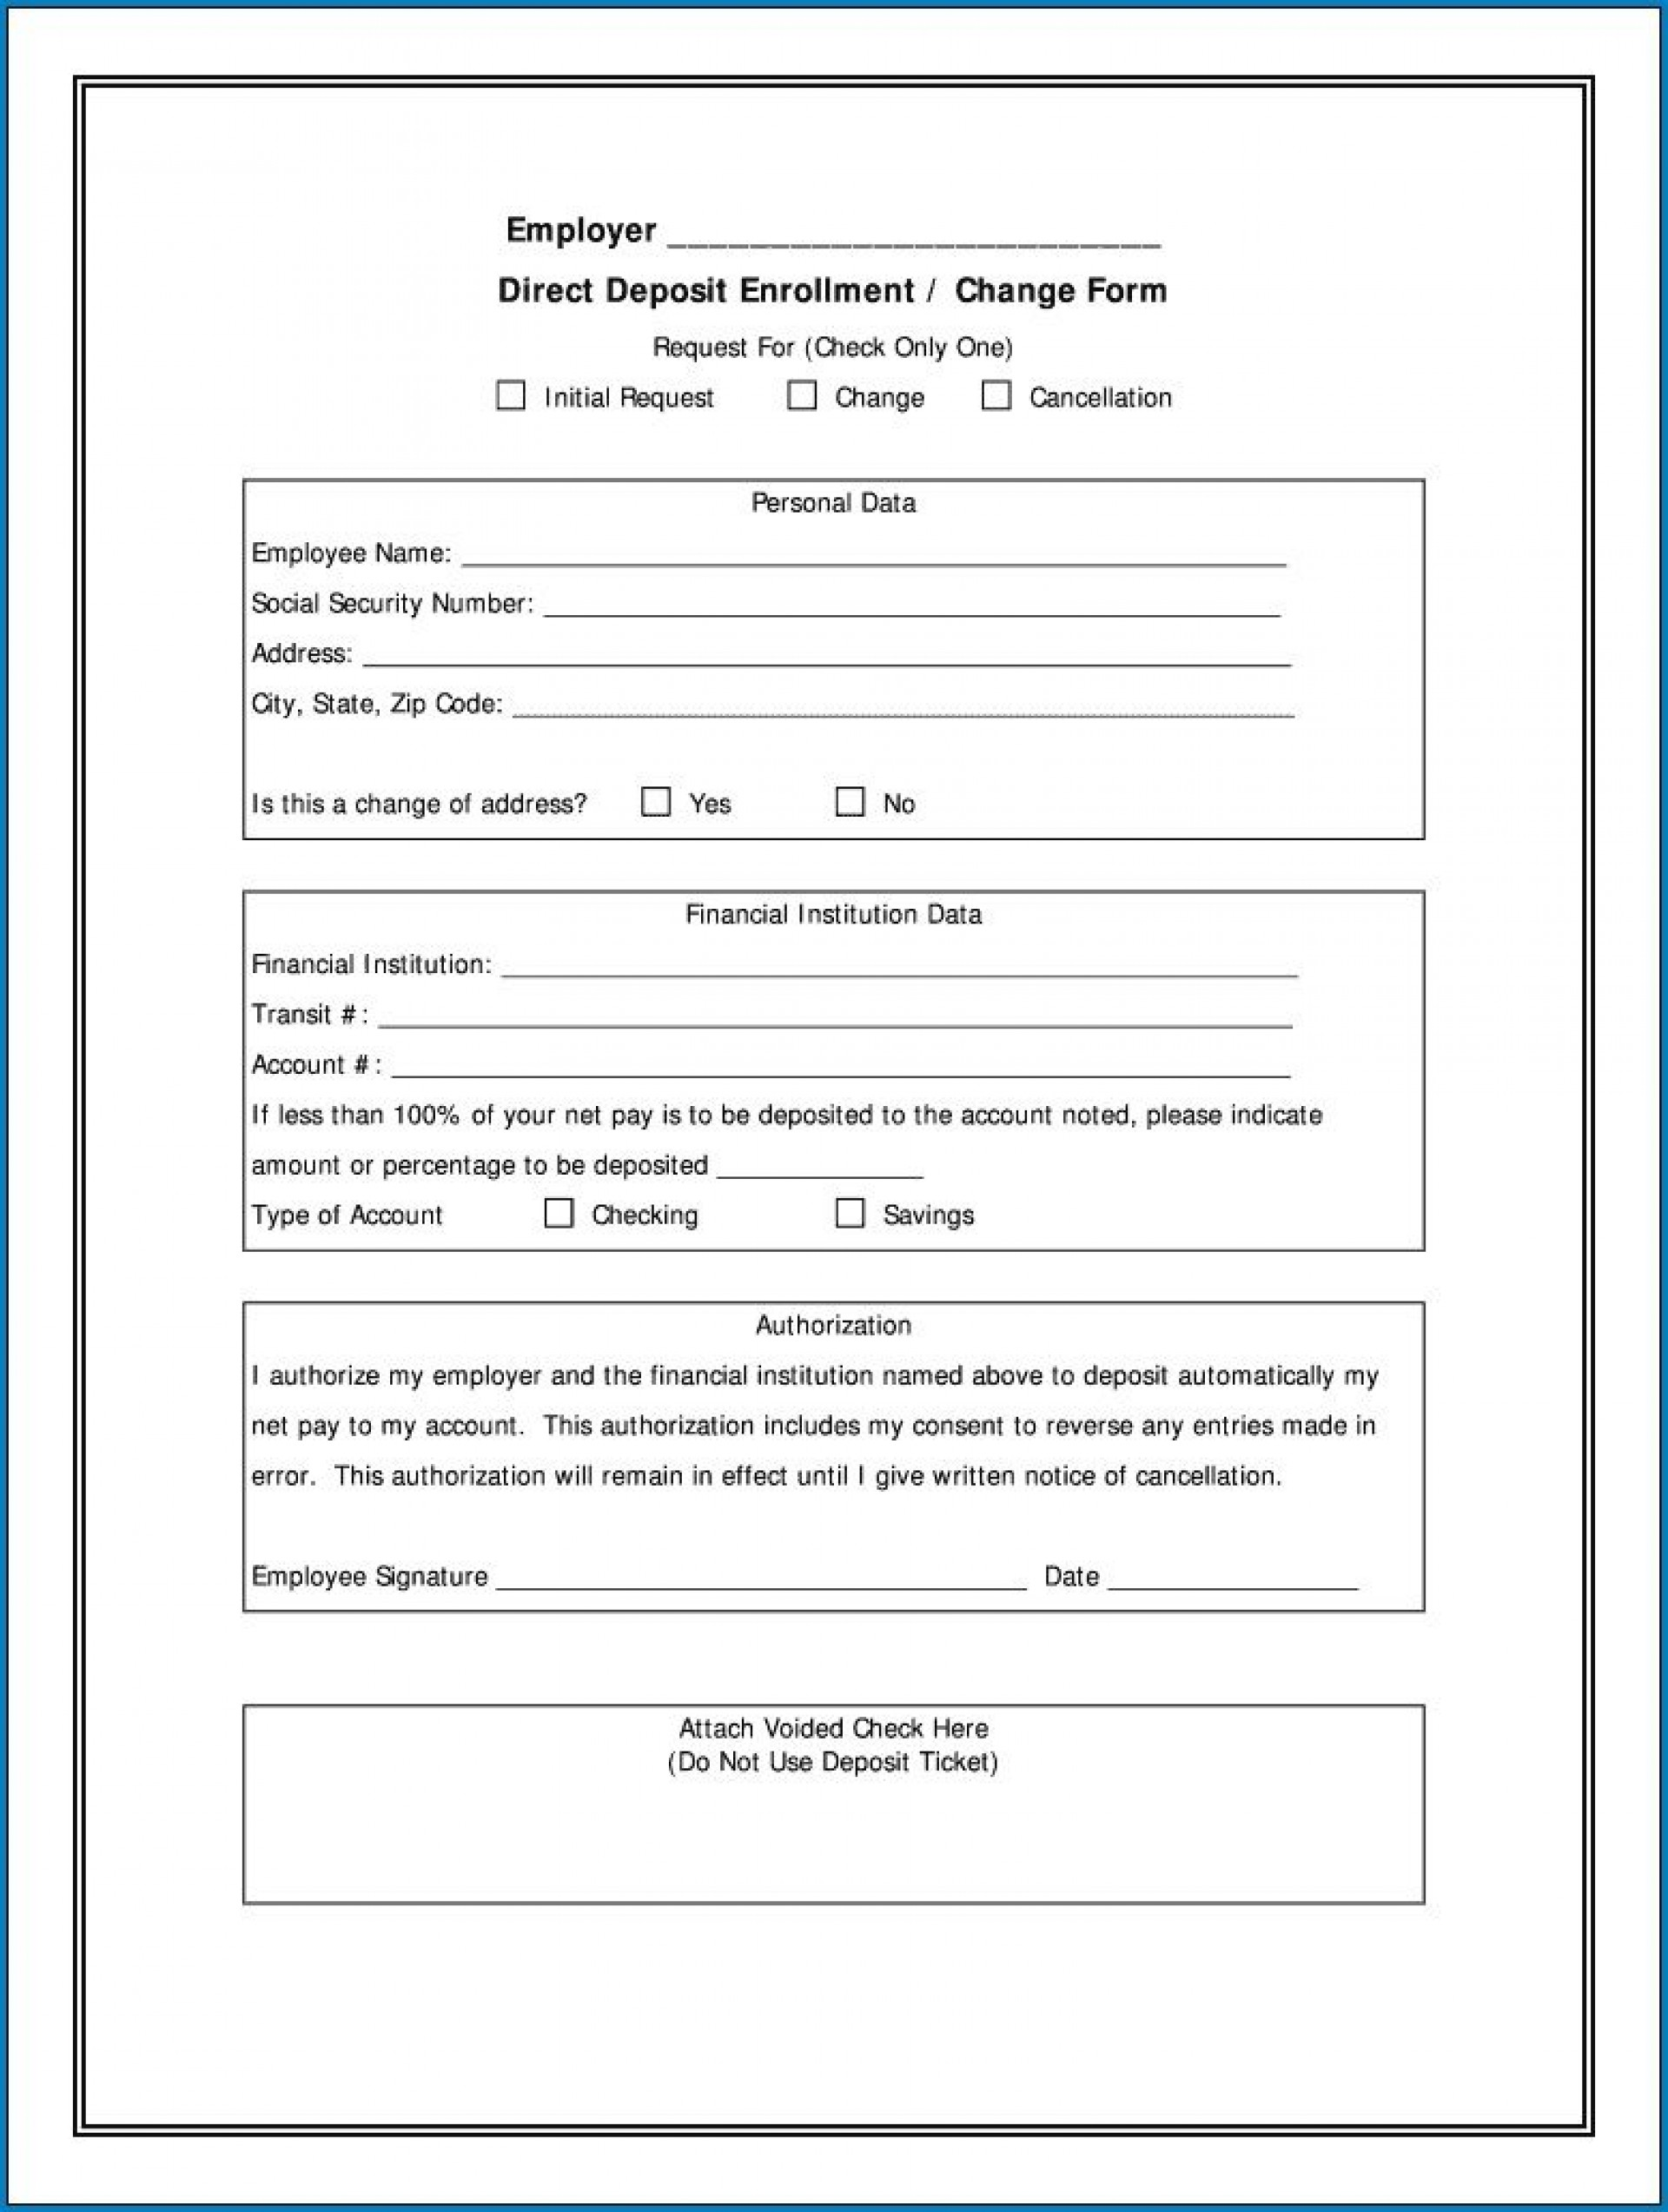 004 Stupendou Direct Deposit Form Template High Resolution  Multiple Account Ach Authorization1920